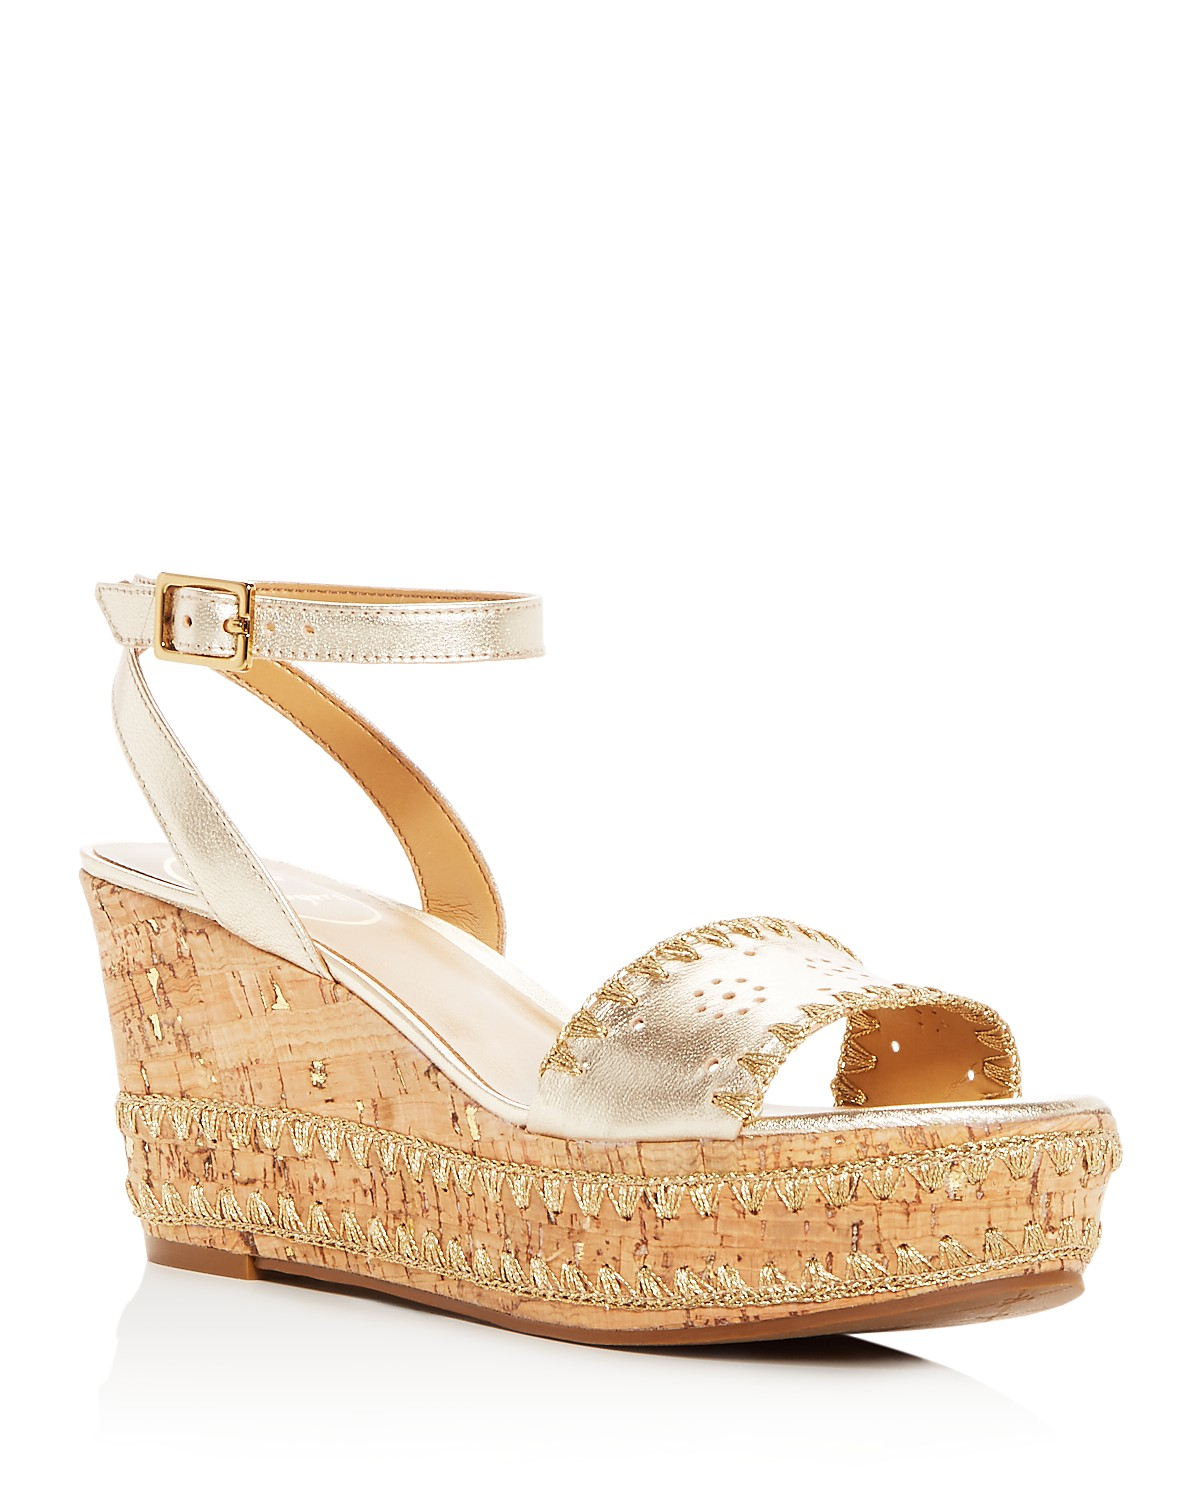 Jack Rogers Women's Lennon Leather & Cork Wedge Platform Sandals jejs34wfbR